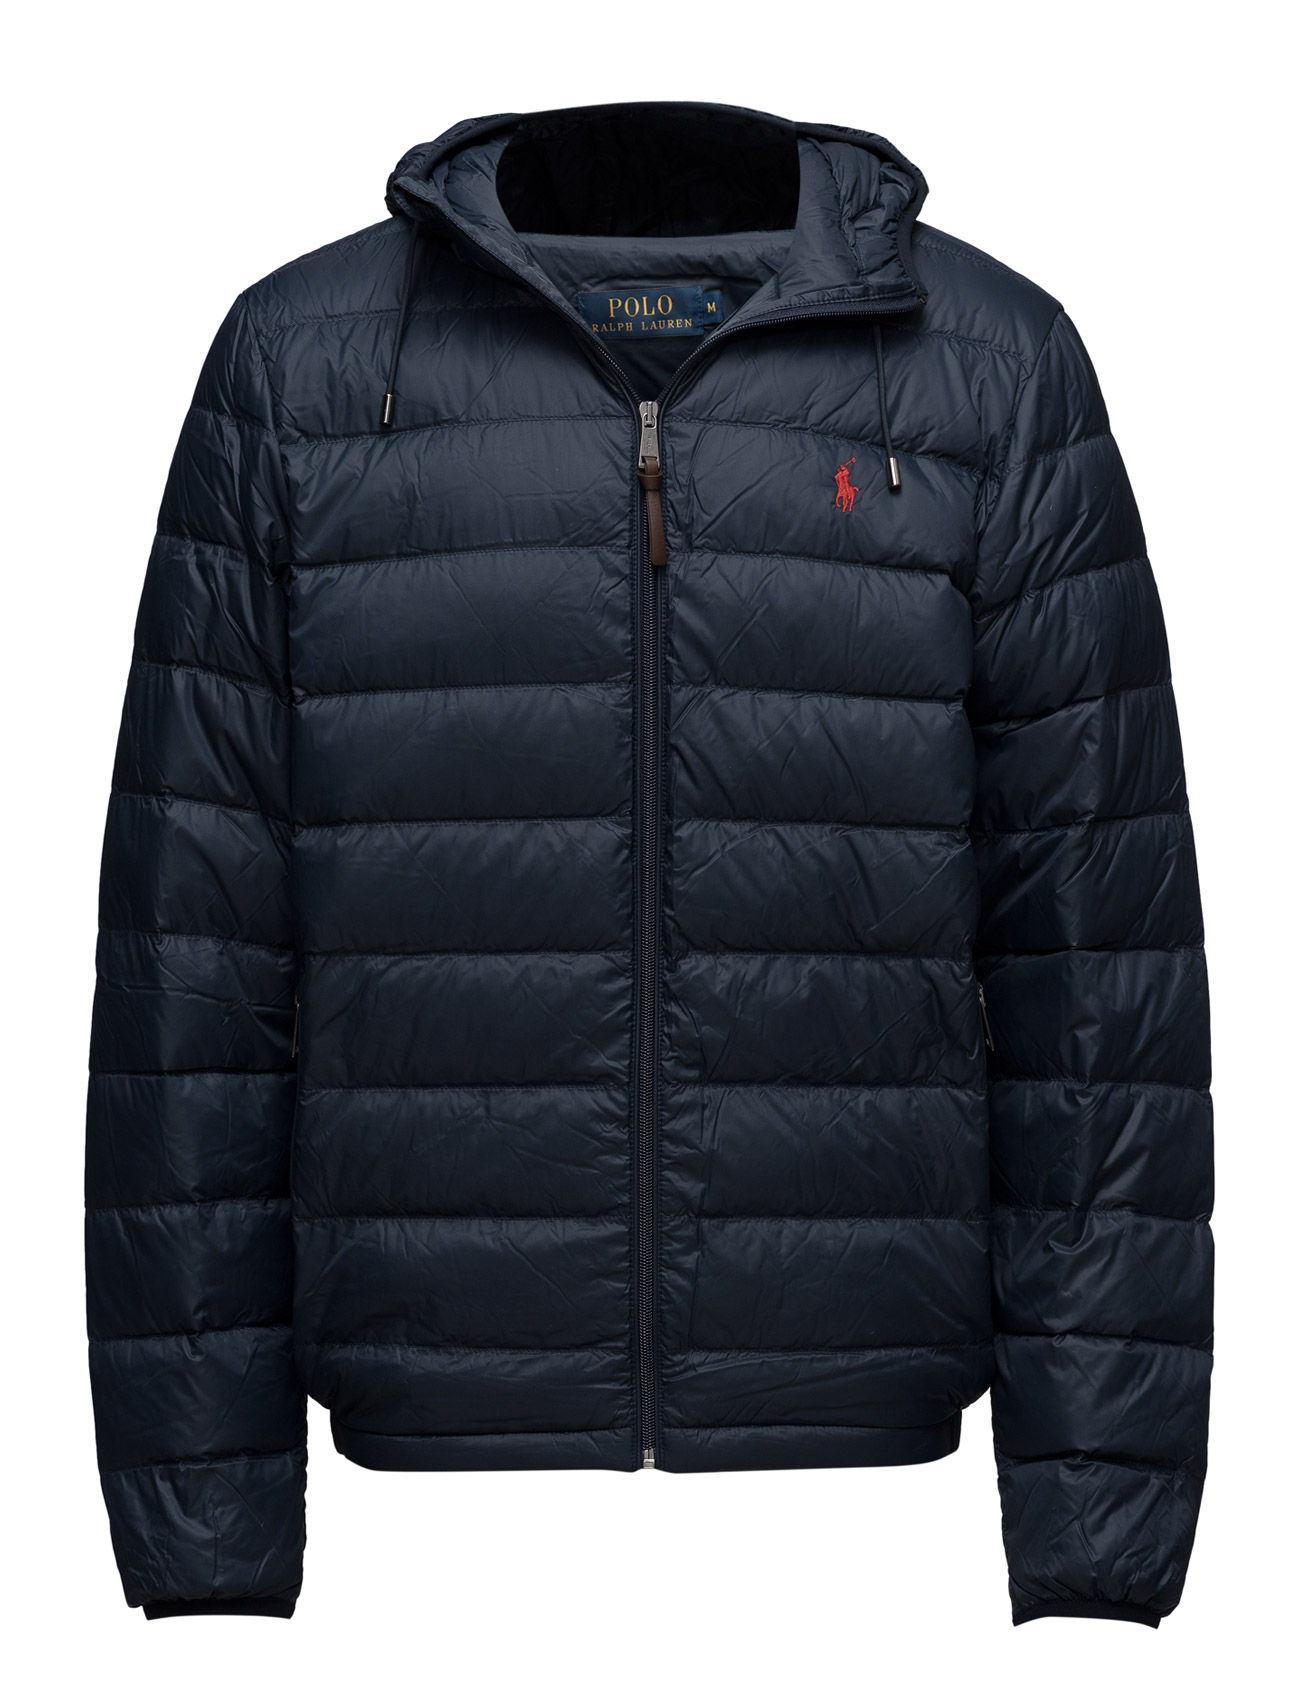 Polo Ralph Lauren Packable Hooded Down Jacket